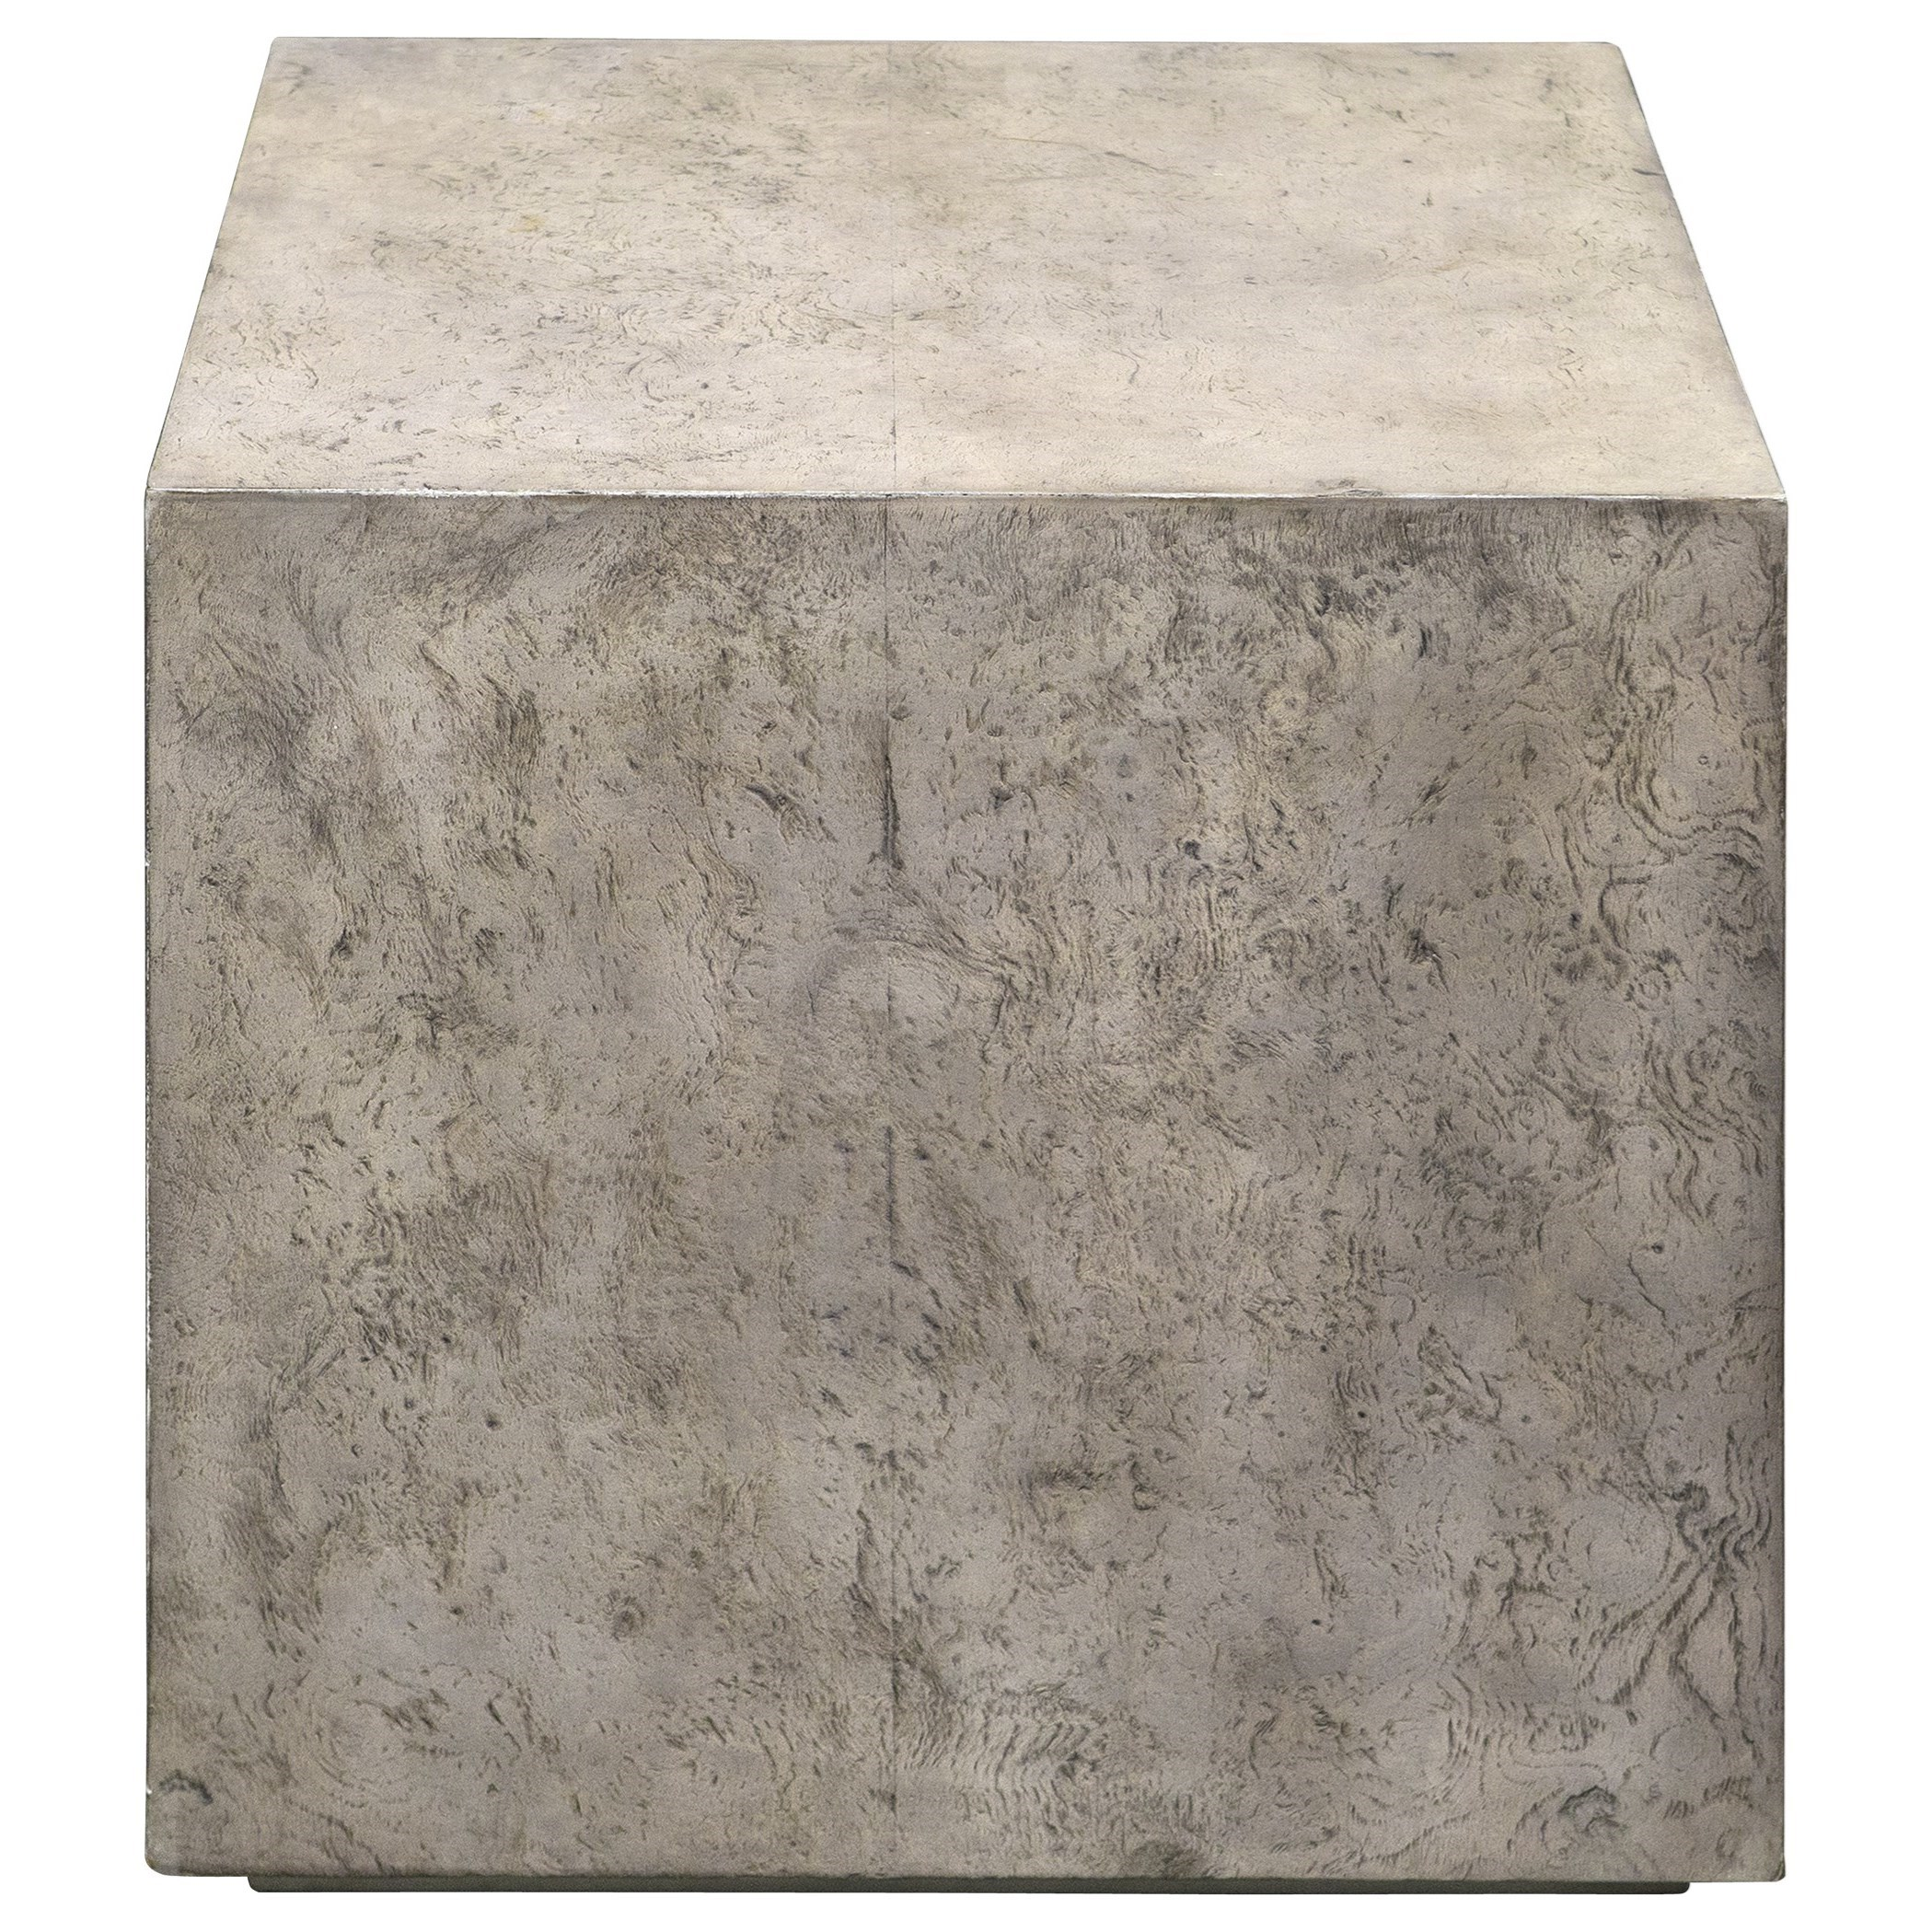 Accent Furniture - Occasional Tables Kioni Gray Cube Table by Uttermost at Dream Home Interiors